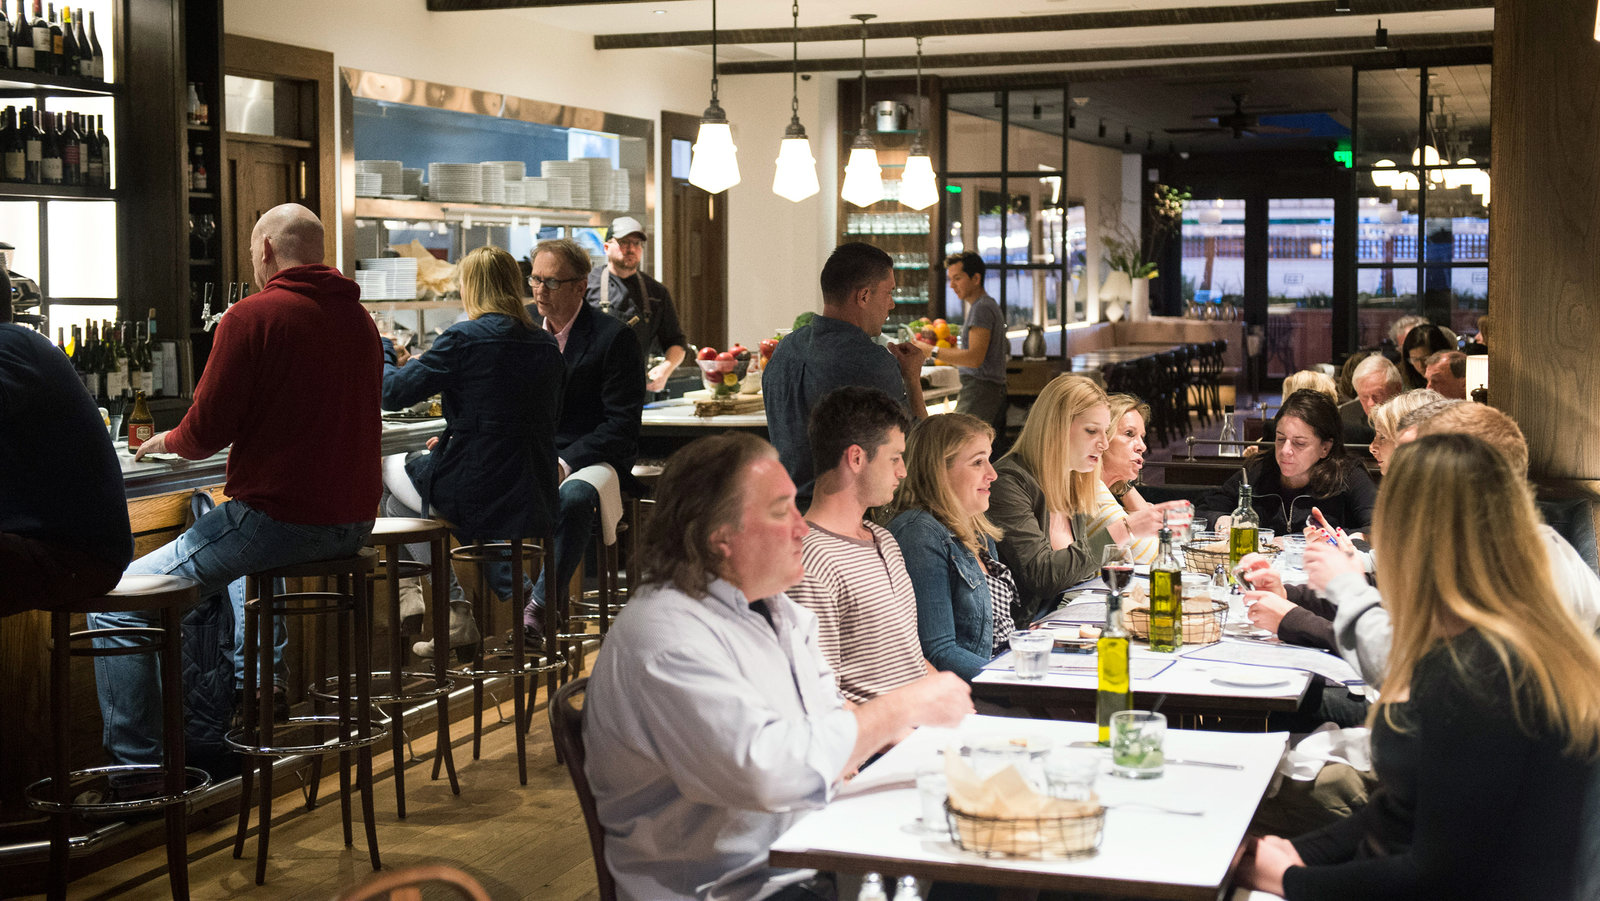 New Restaurants Pop Up In East End The New York Times